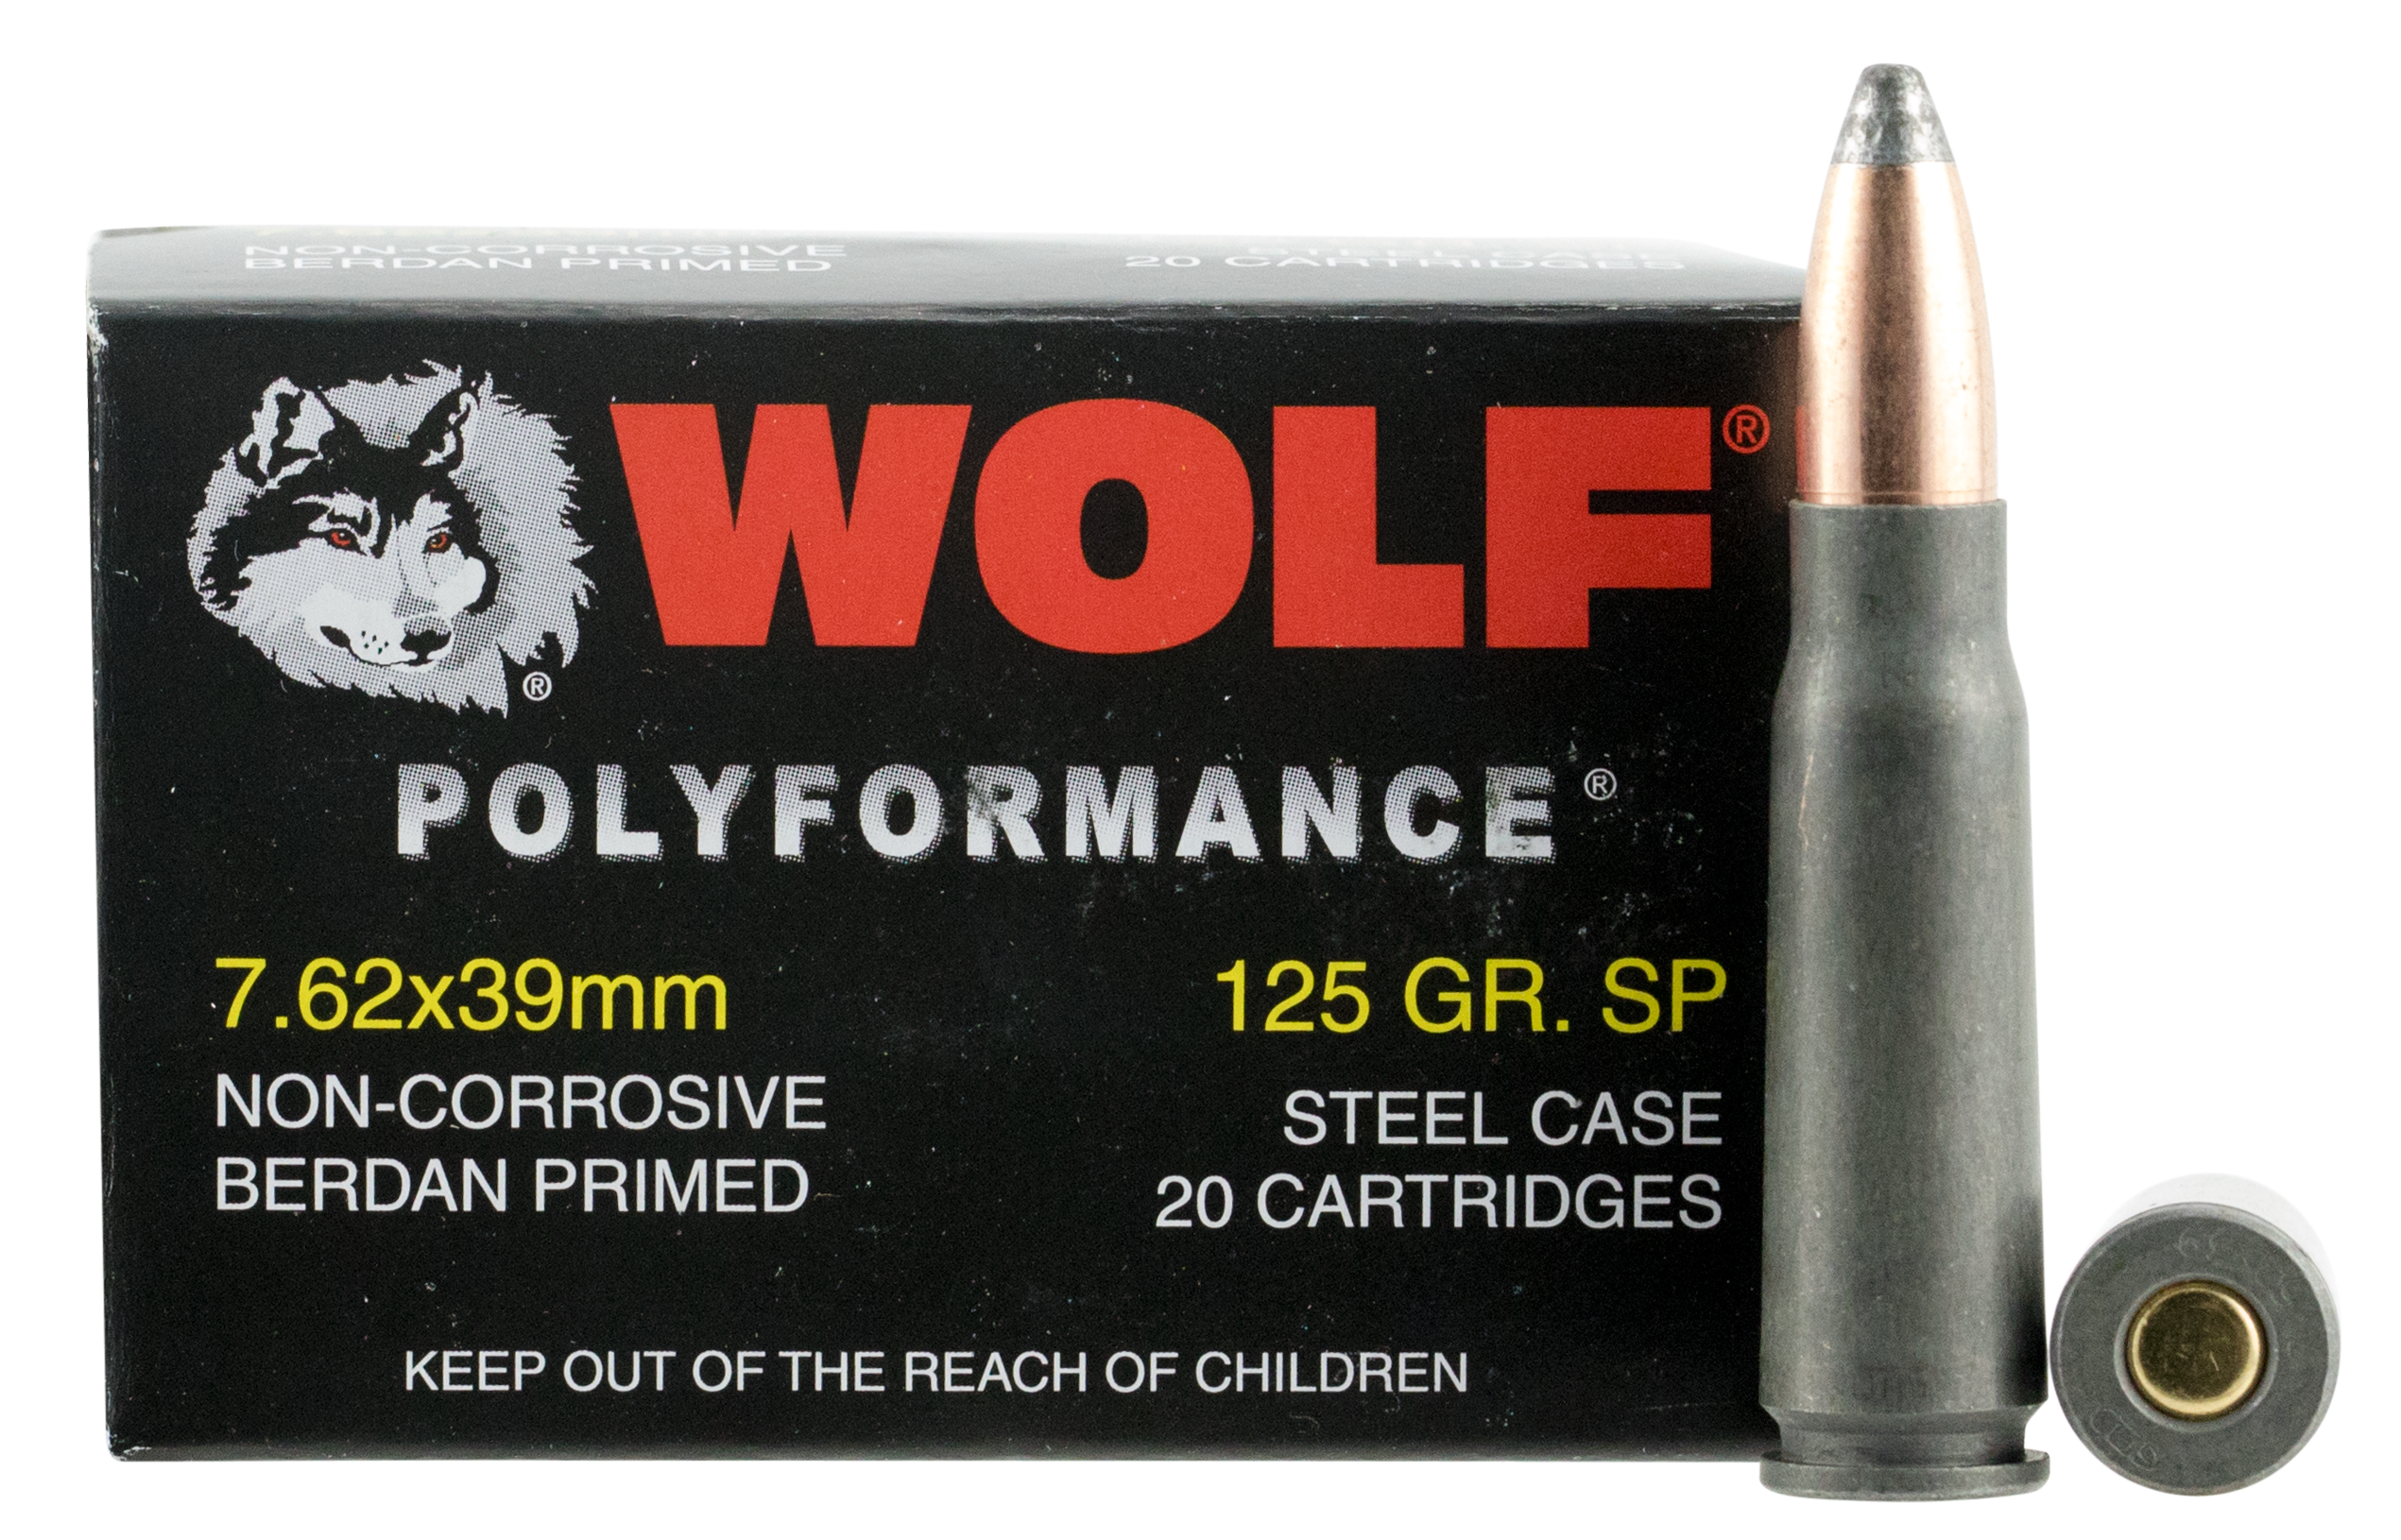 Wolf PolyFormance Ammunition 7.62x39mm 155GR Soft Point Per 20